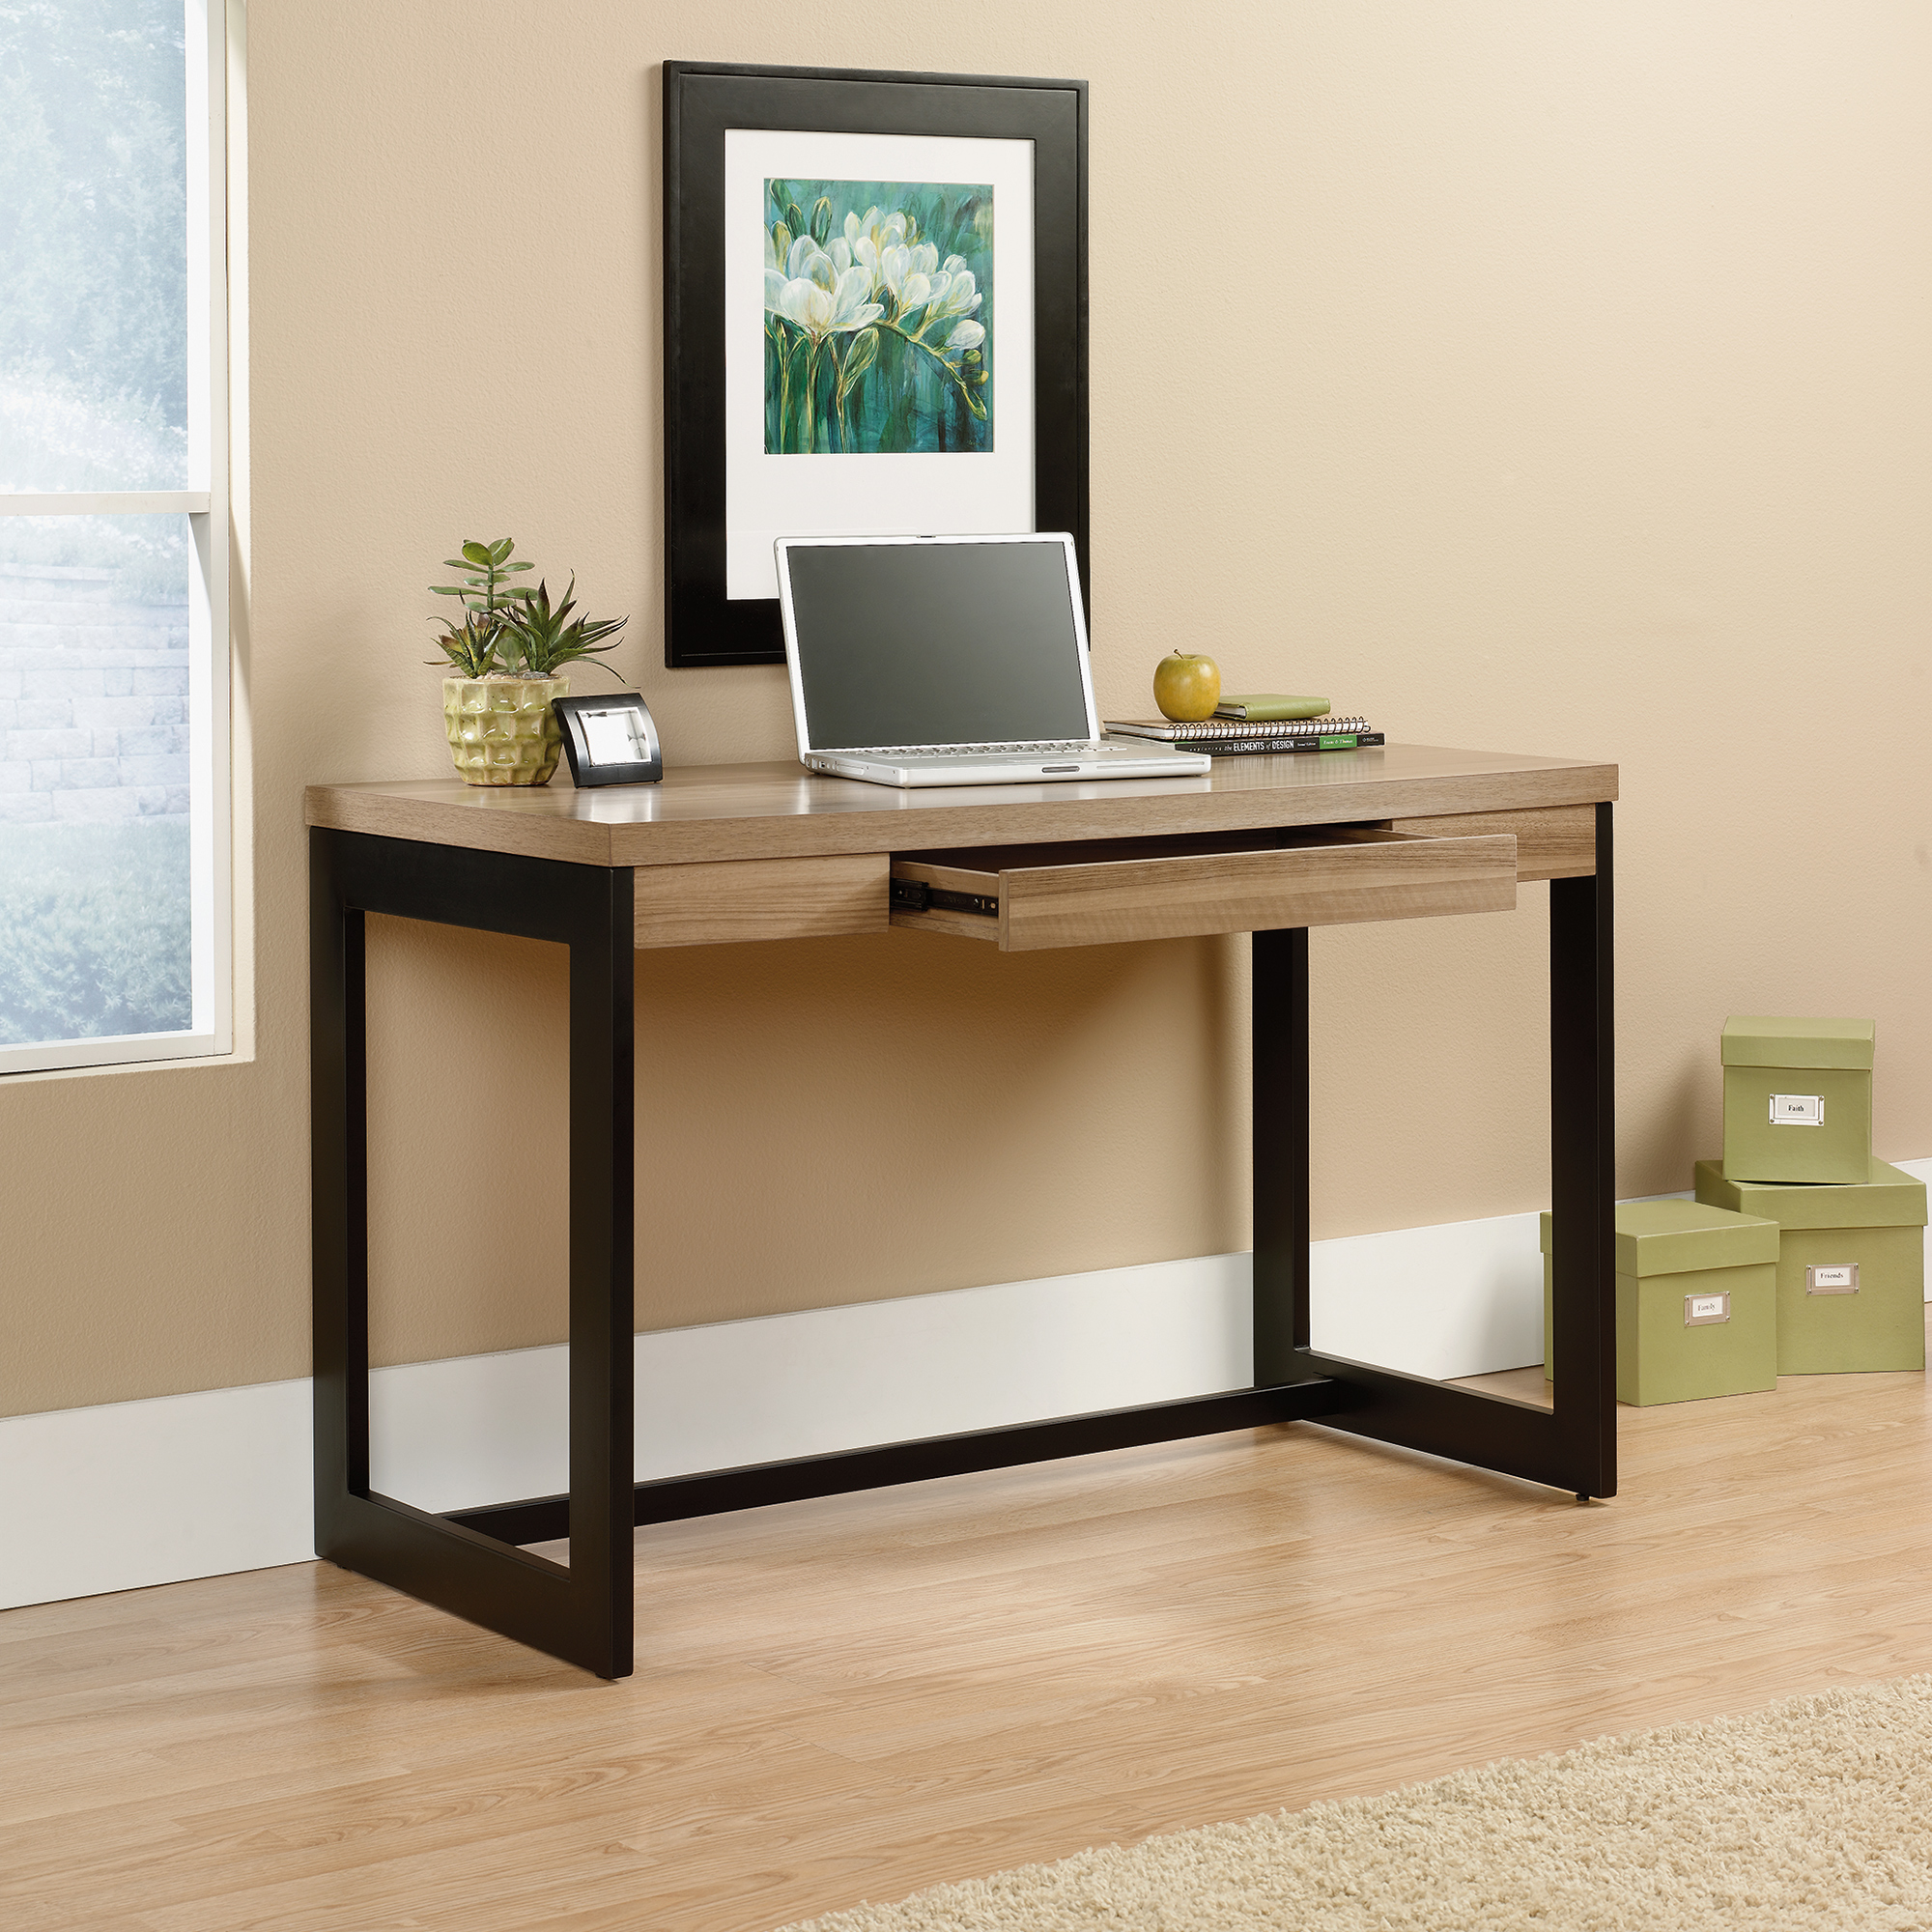 wonderful wooden desk by sauder furniture on wooden floor which matched with beige wall for home office decor ideas